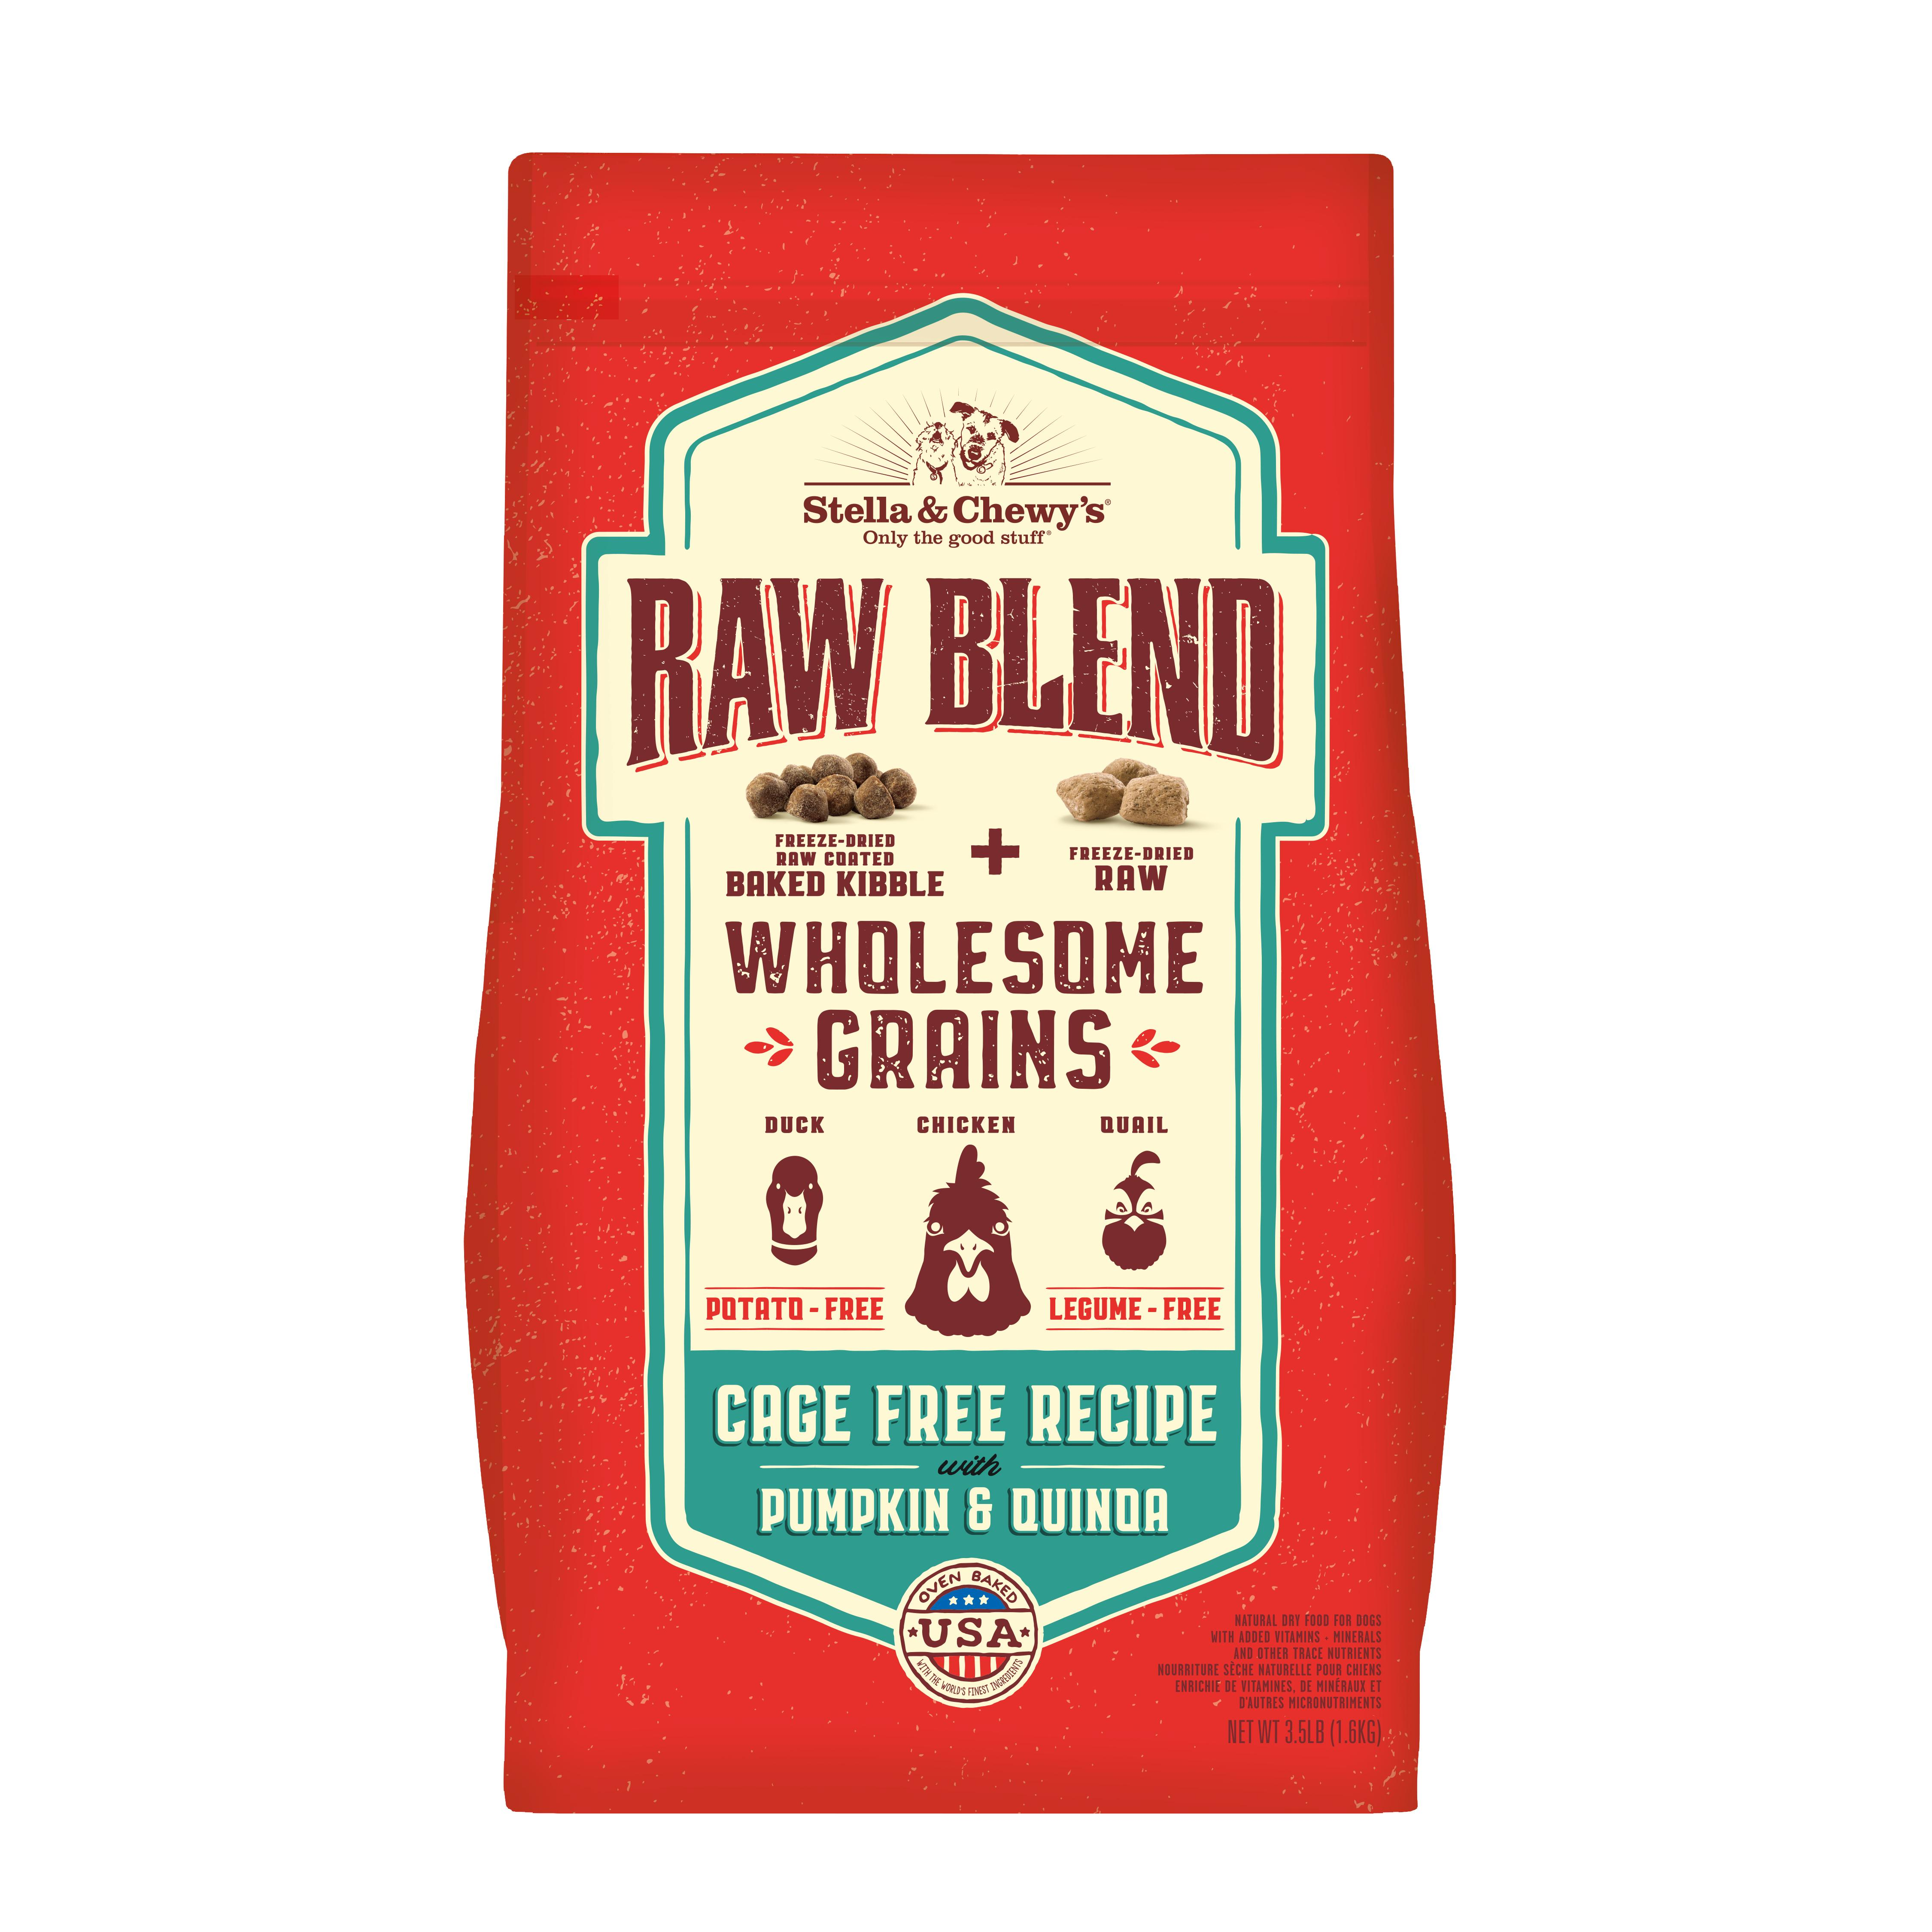 Stella & Chewy'sRaw Blend Wholesome Grains Cage-Free Recipe with Pumpkin & Quinoa Dry Dog Food Image